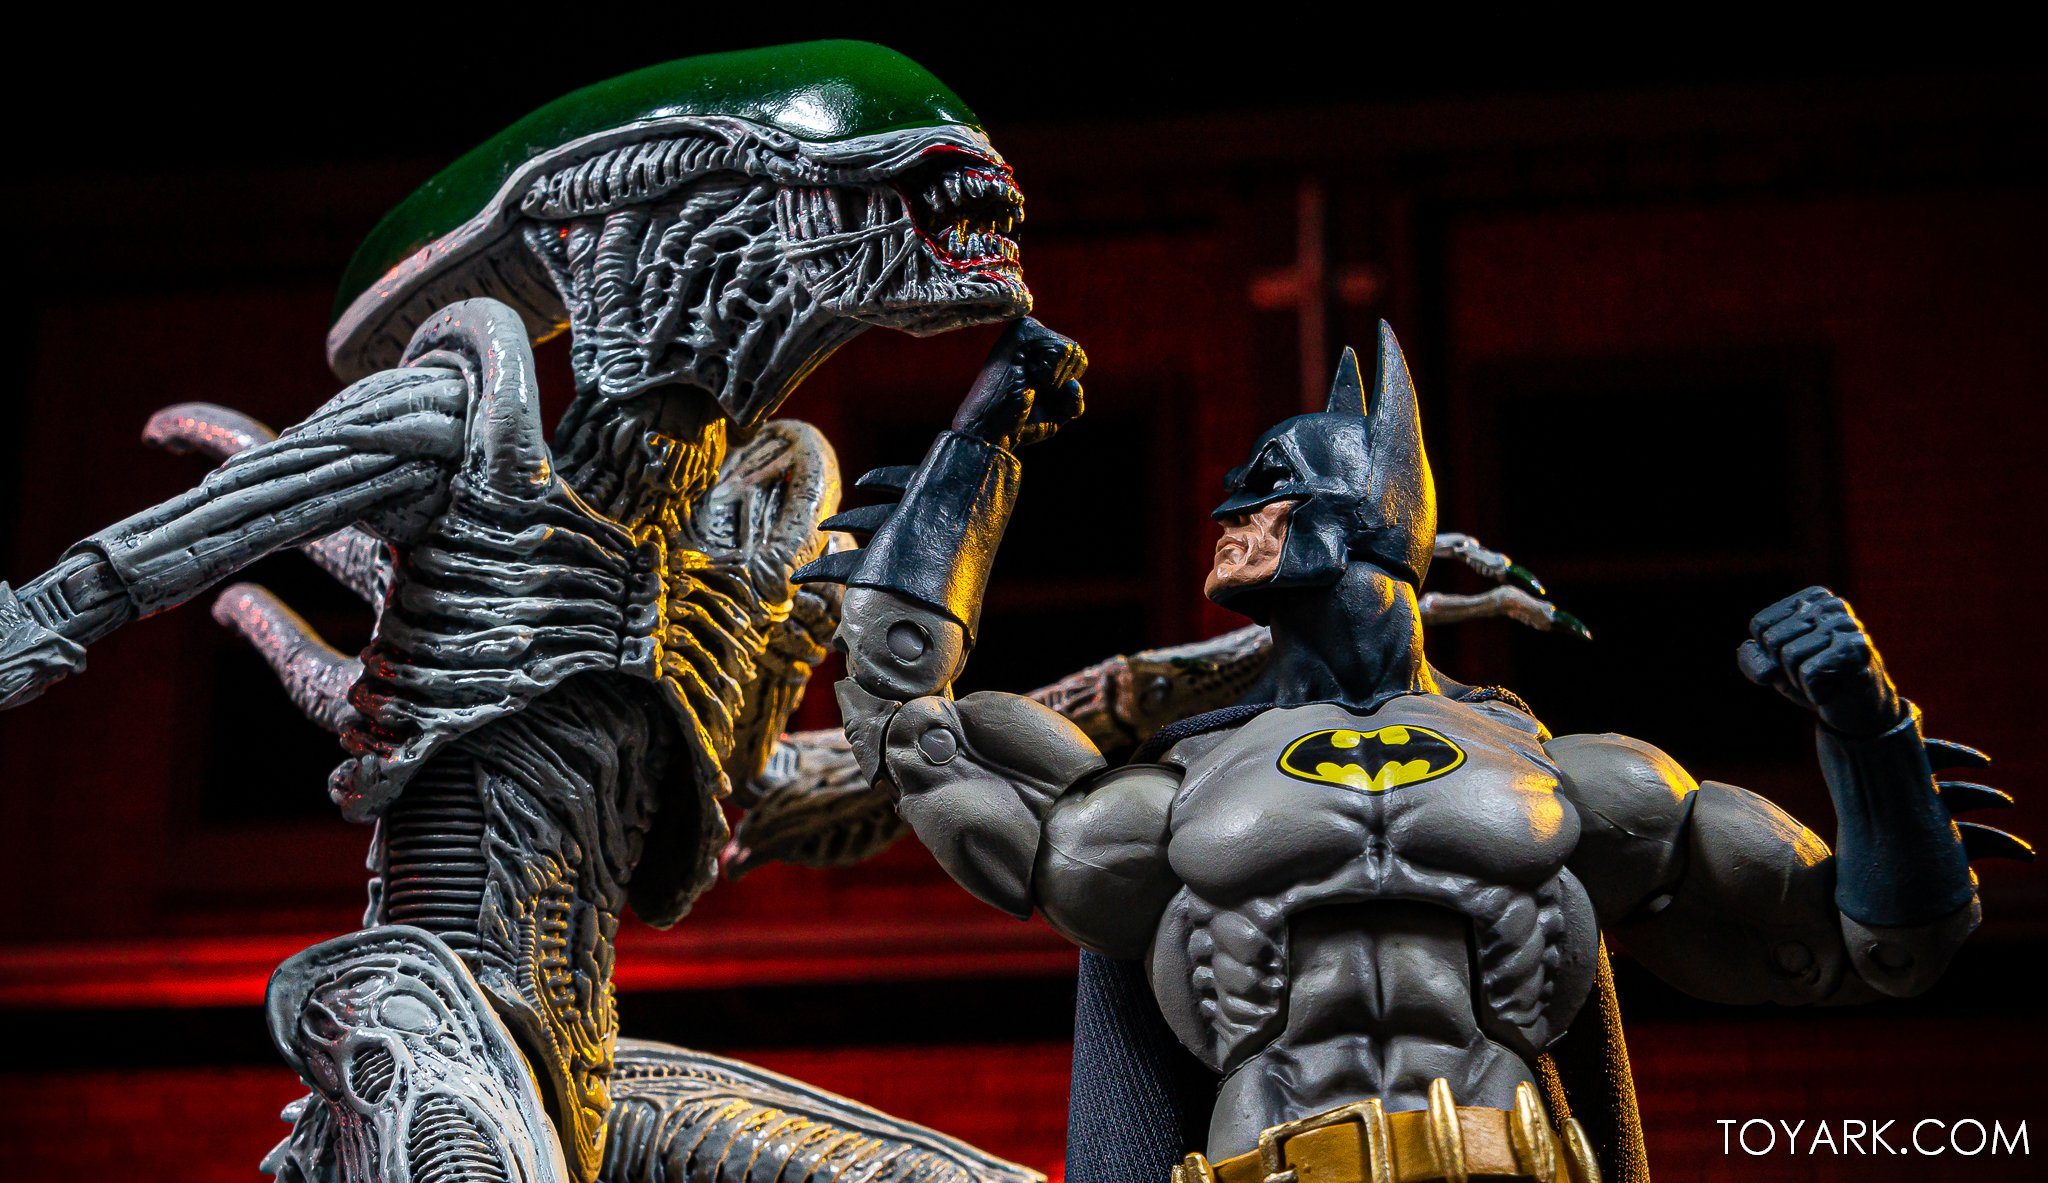 https://news.toyark.com/wp-content/uploads/sites/4/2019/10/Batman-vs-Joker-Alien-NYCC040.jpg